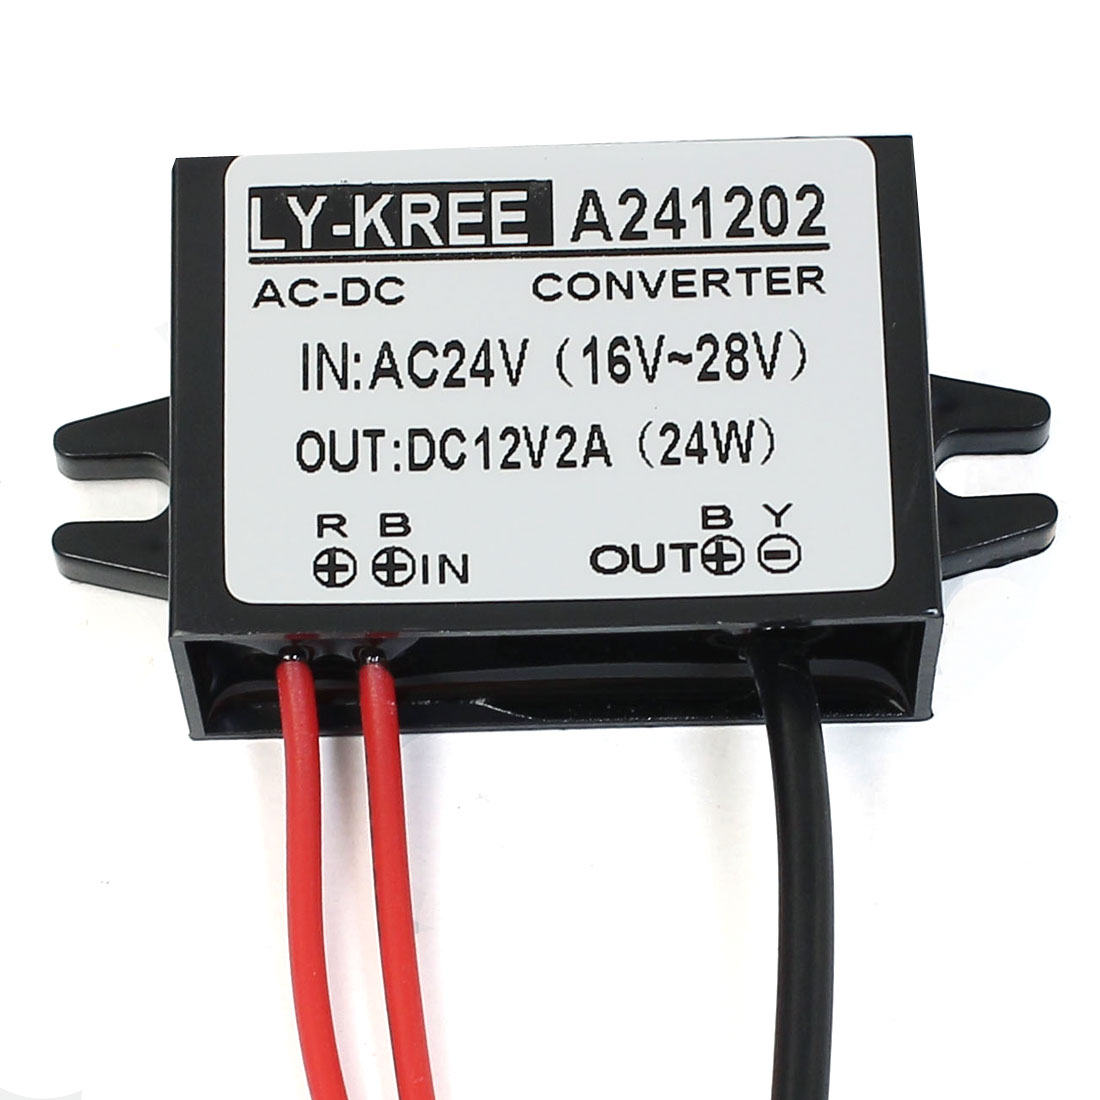 DC 12V 2A 24W LED Driver Power Supply Converter Regulator Waterproof Electronic Transformer DC Connector